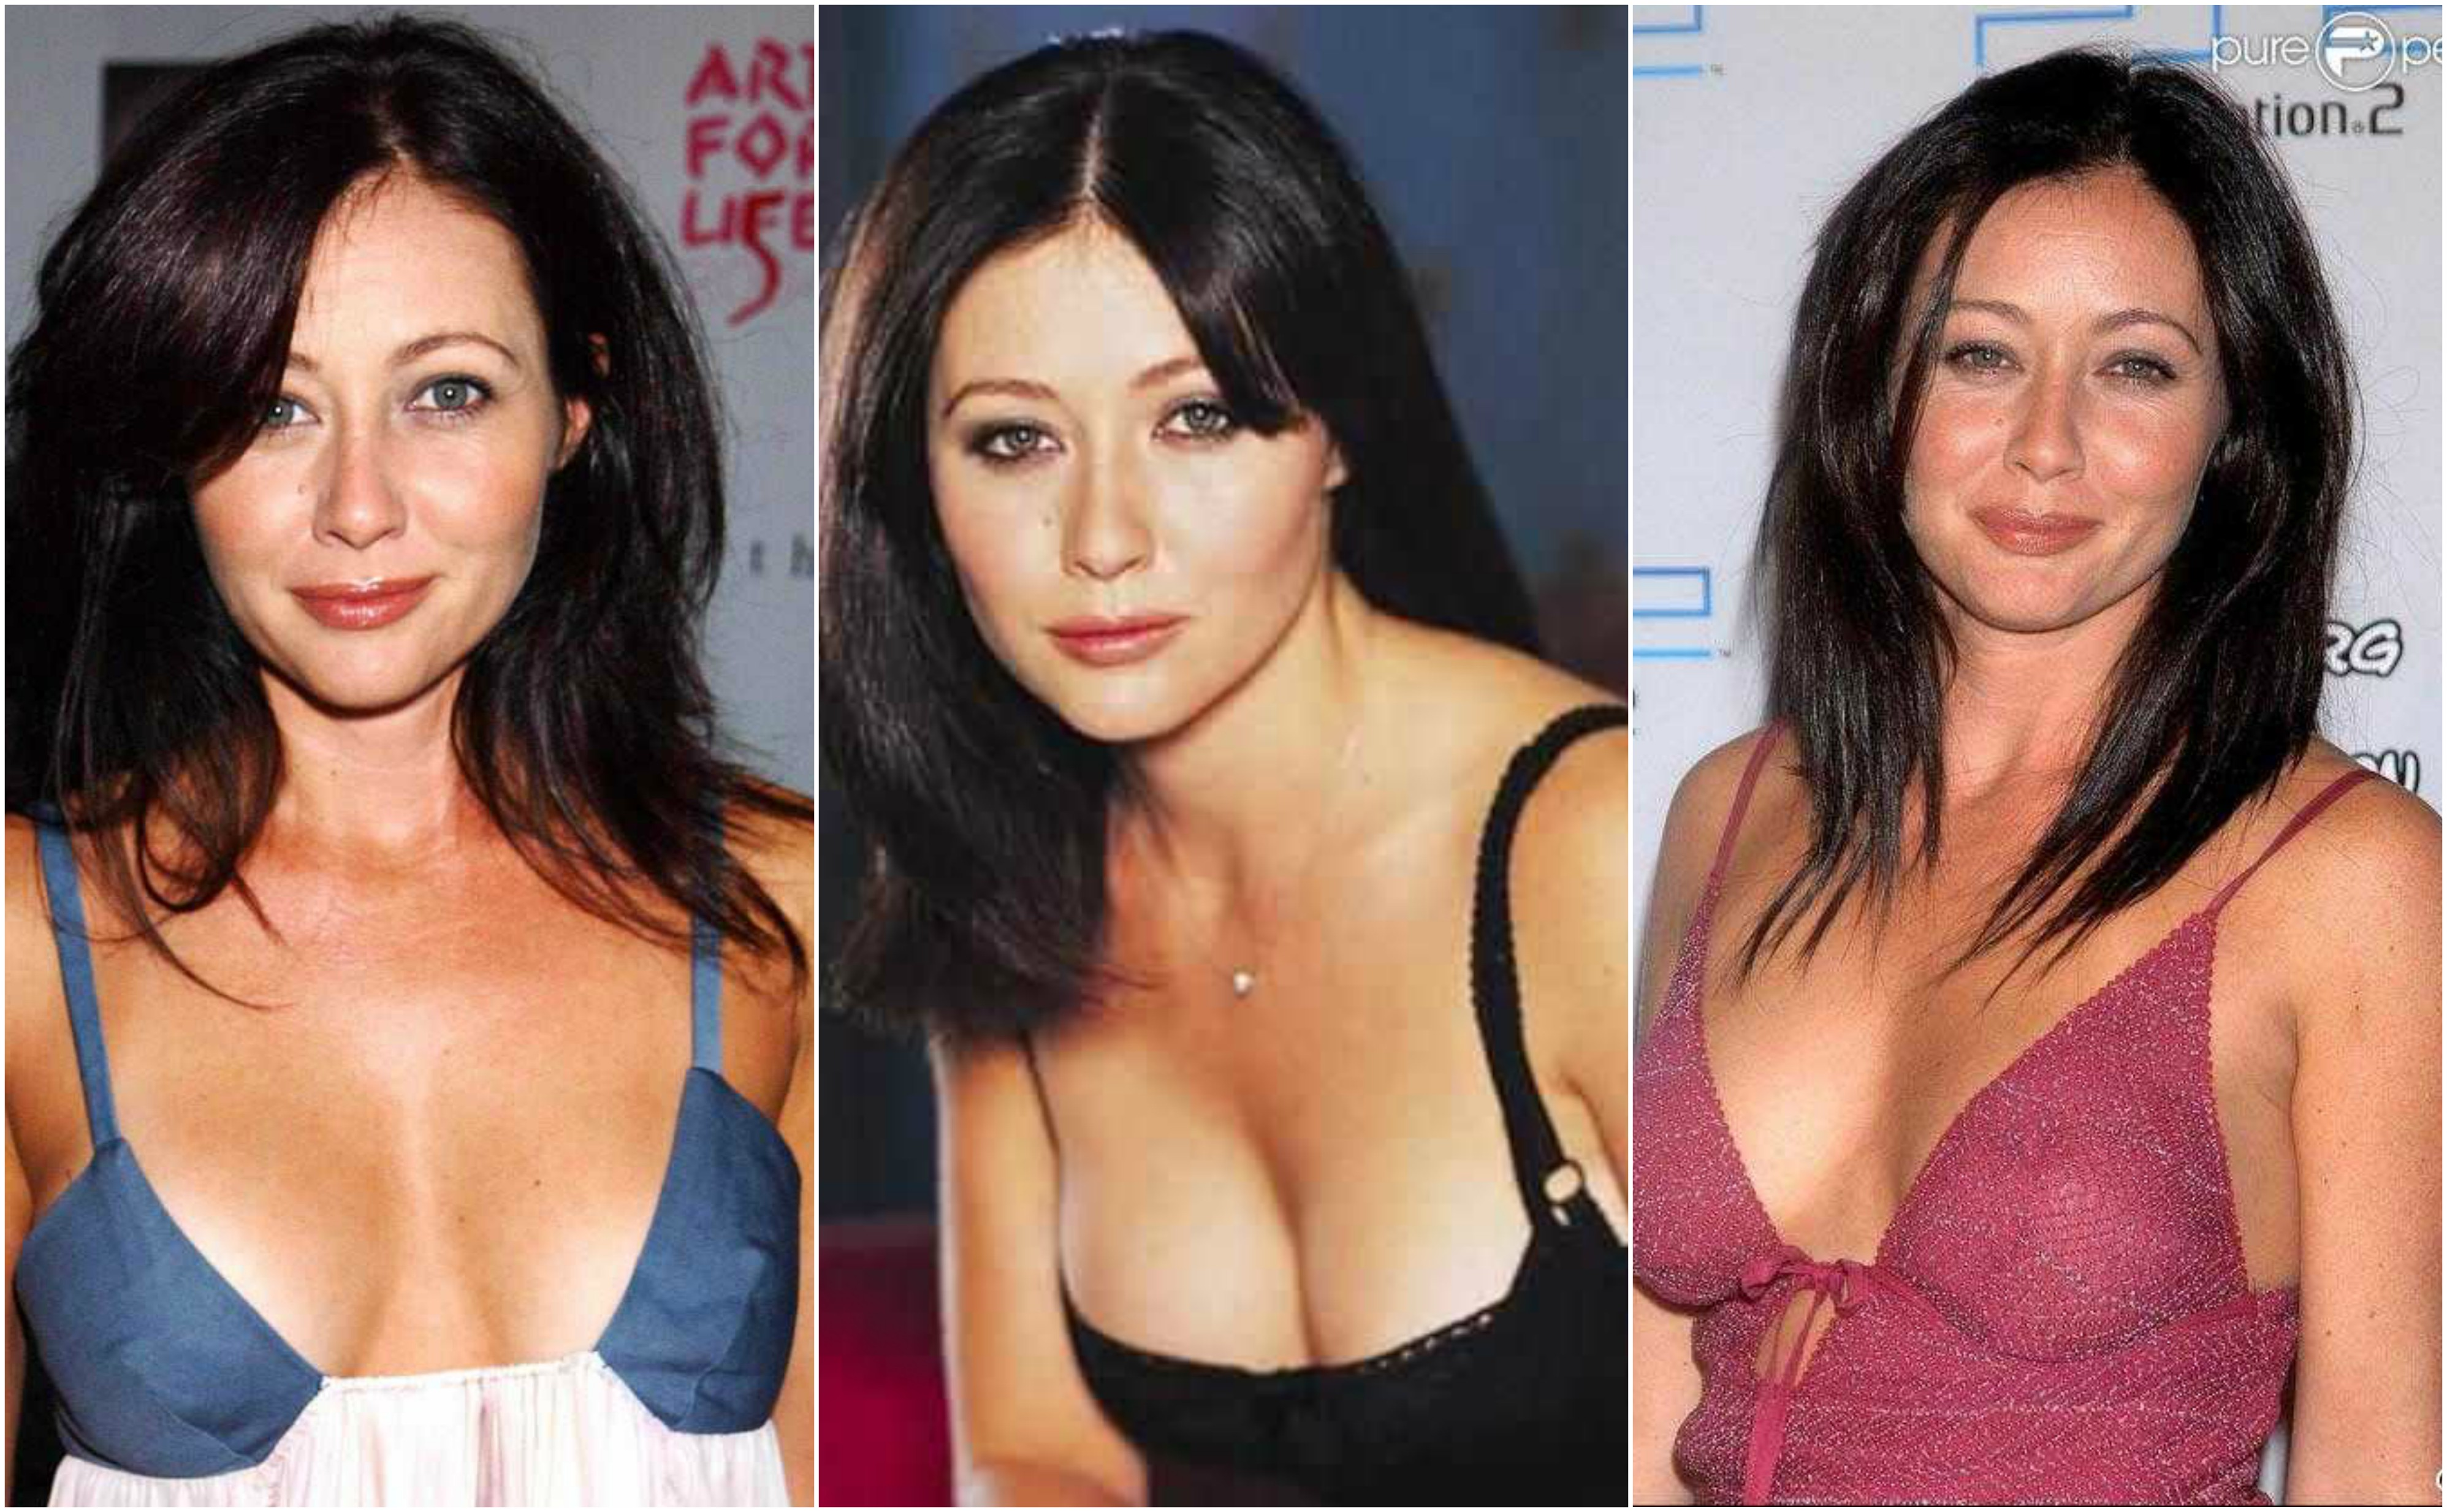 Shannon Doherty Tits photo 28